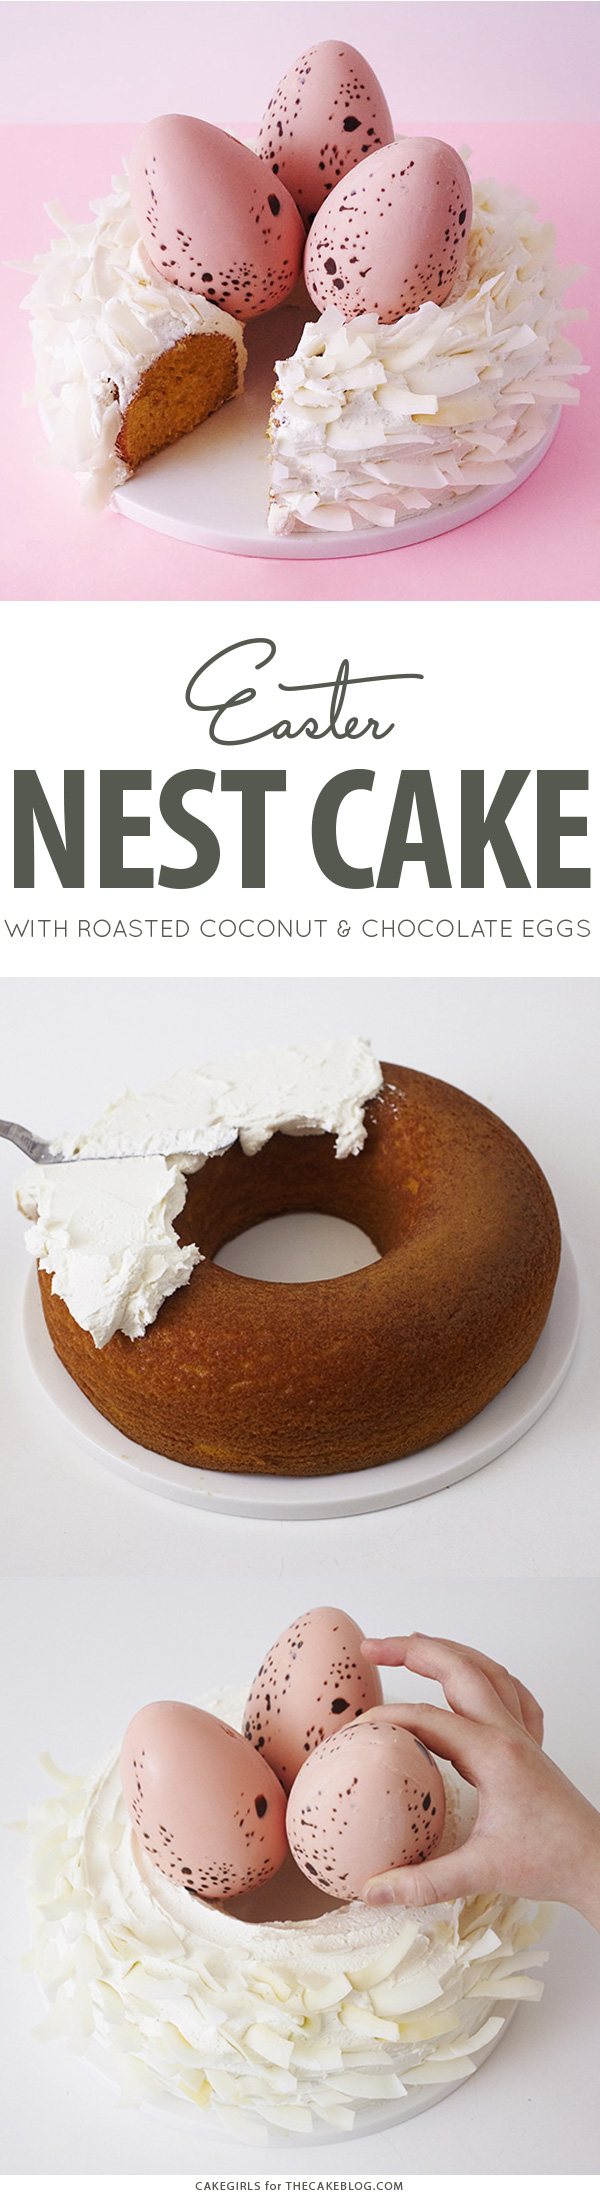 Easter Nest Cake - how to make a nest cake with roasted coconut and chocolate eggs for Easter dessert | by Cakegirls for TheCakeBlog.com